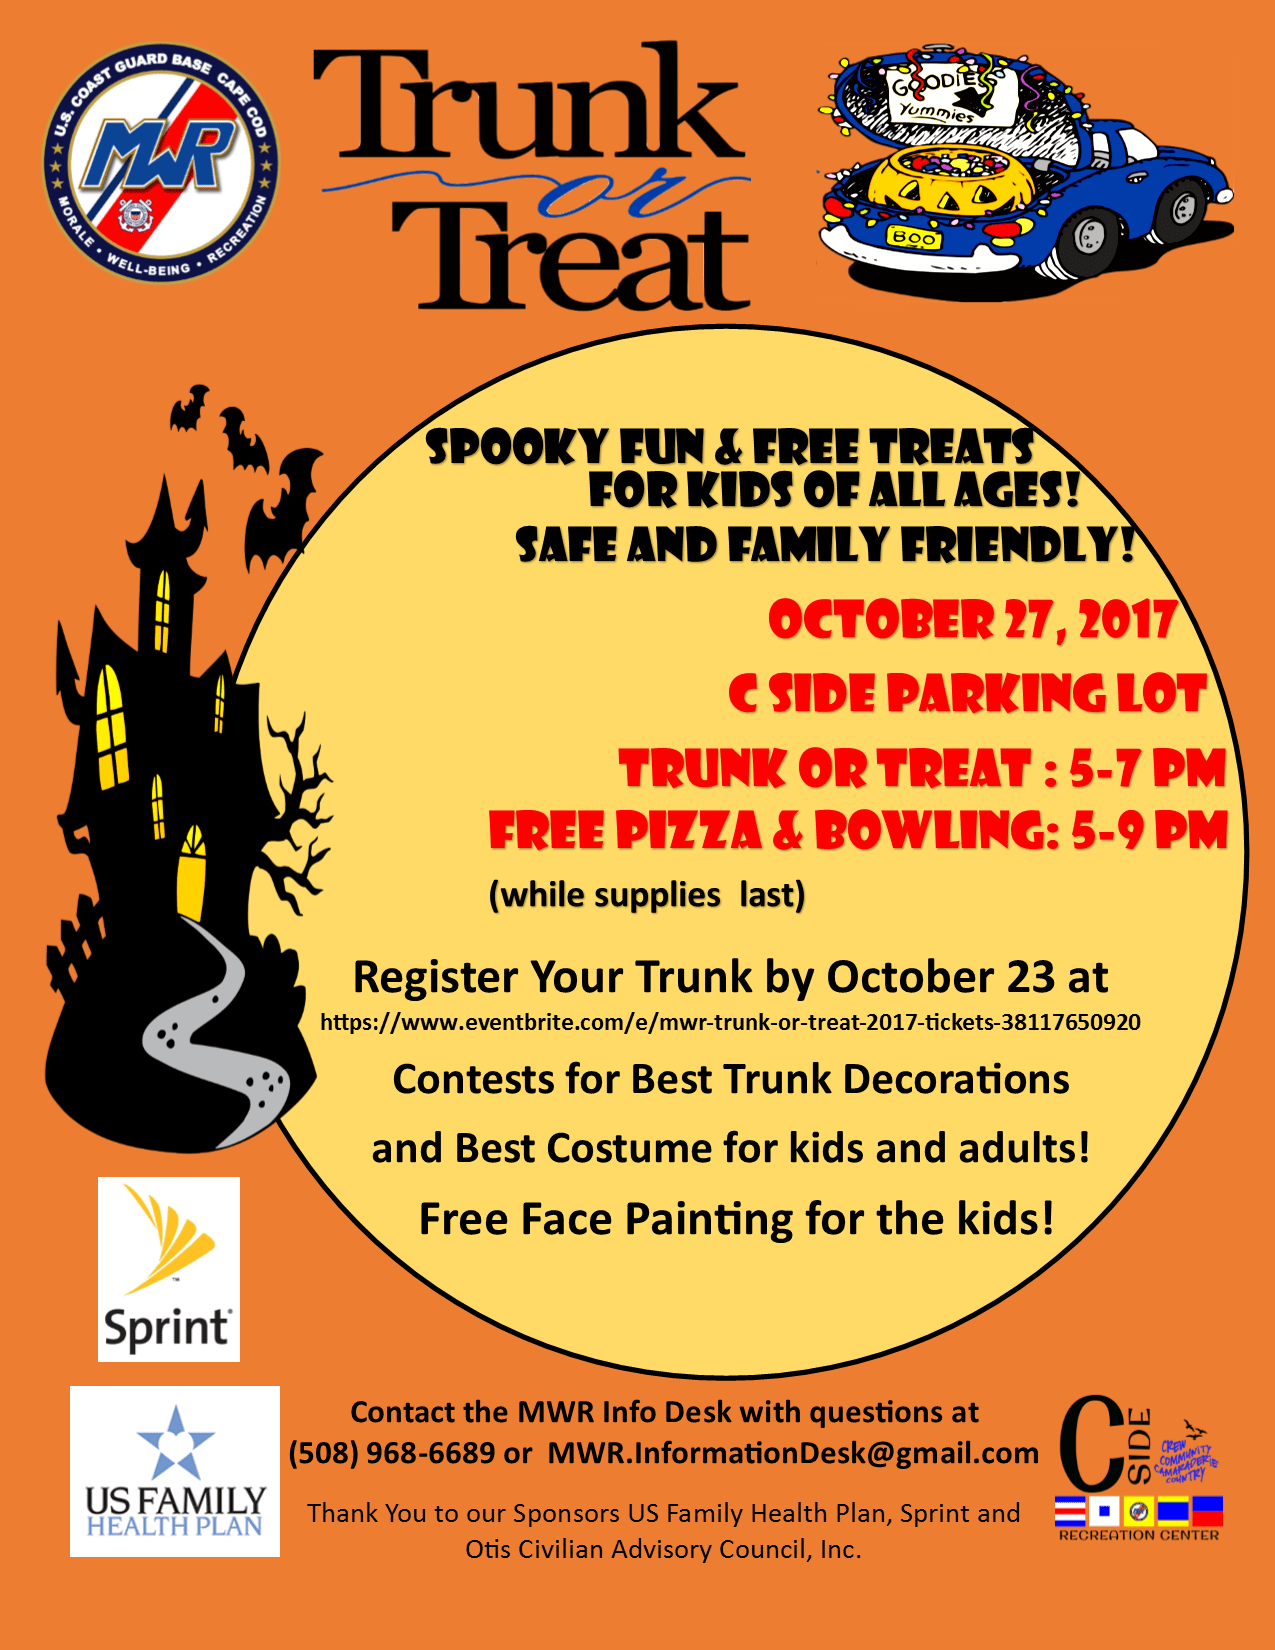 Trunk Or Treat October 27 2017 USCG Base Cape Cod MWR